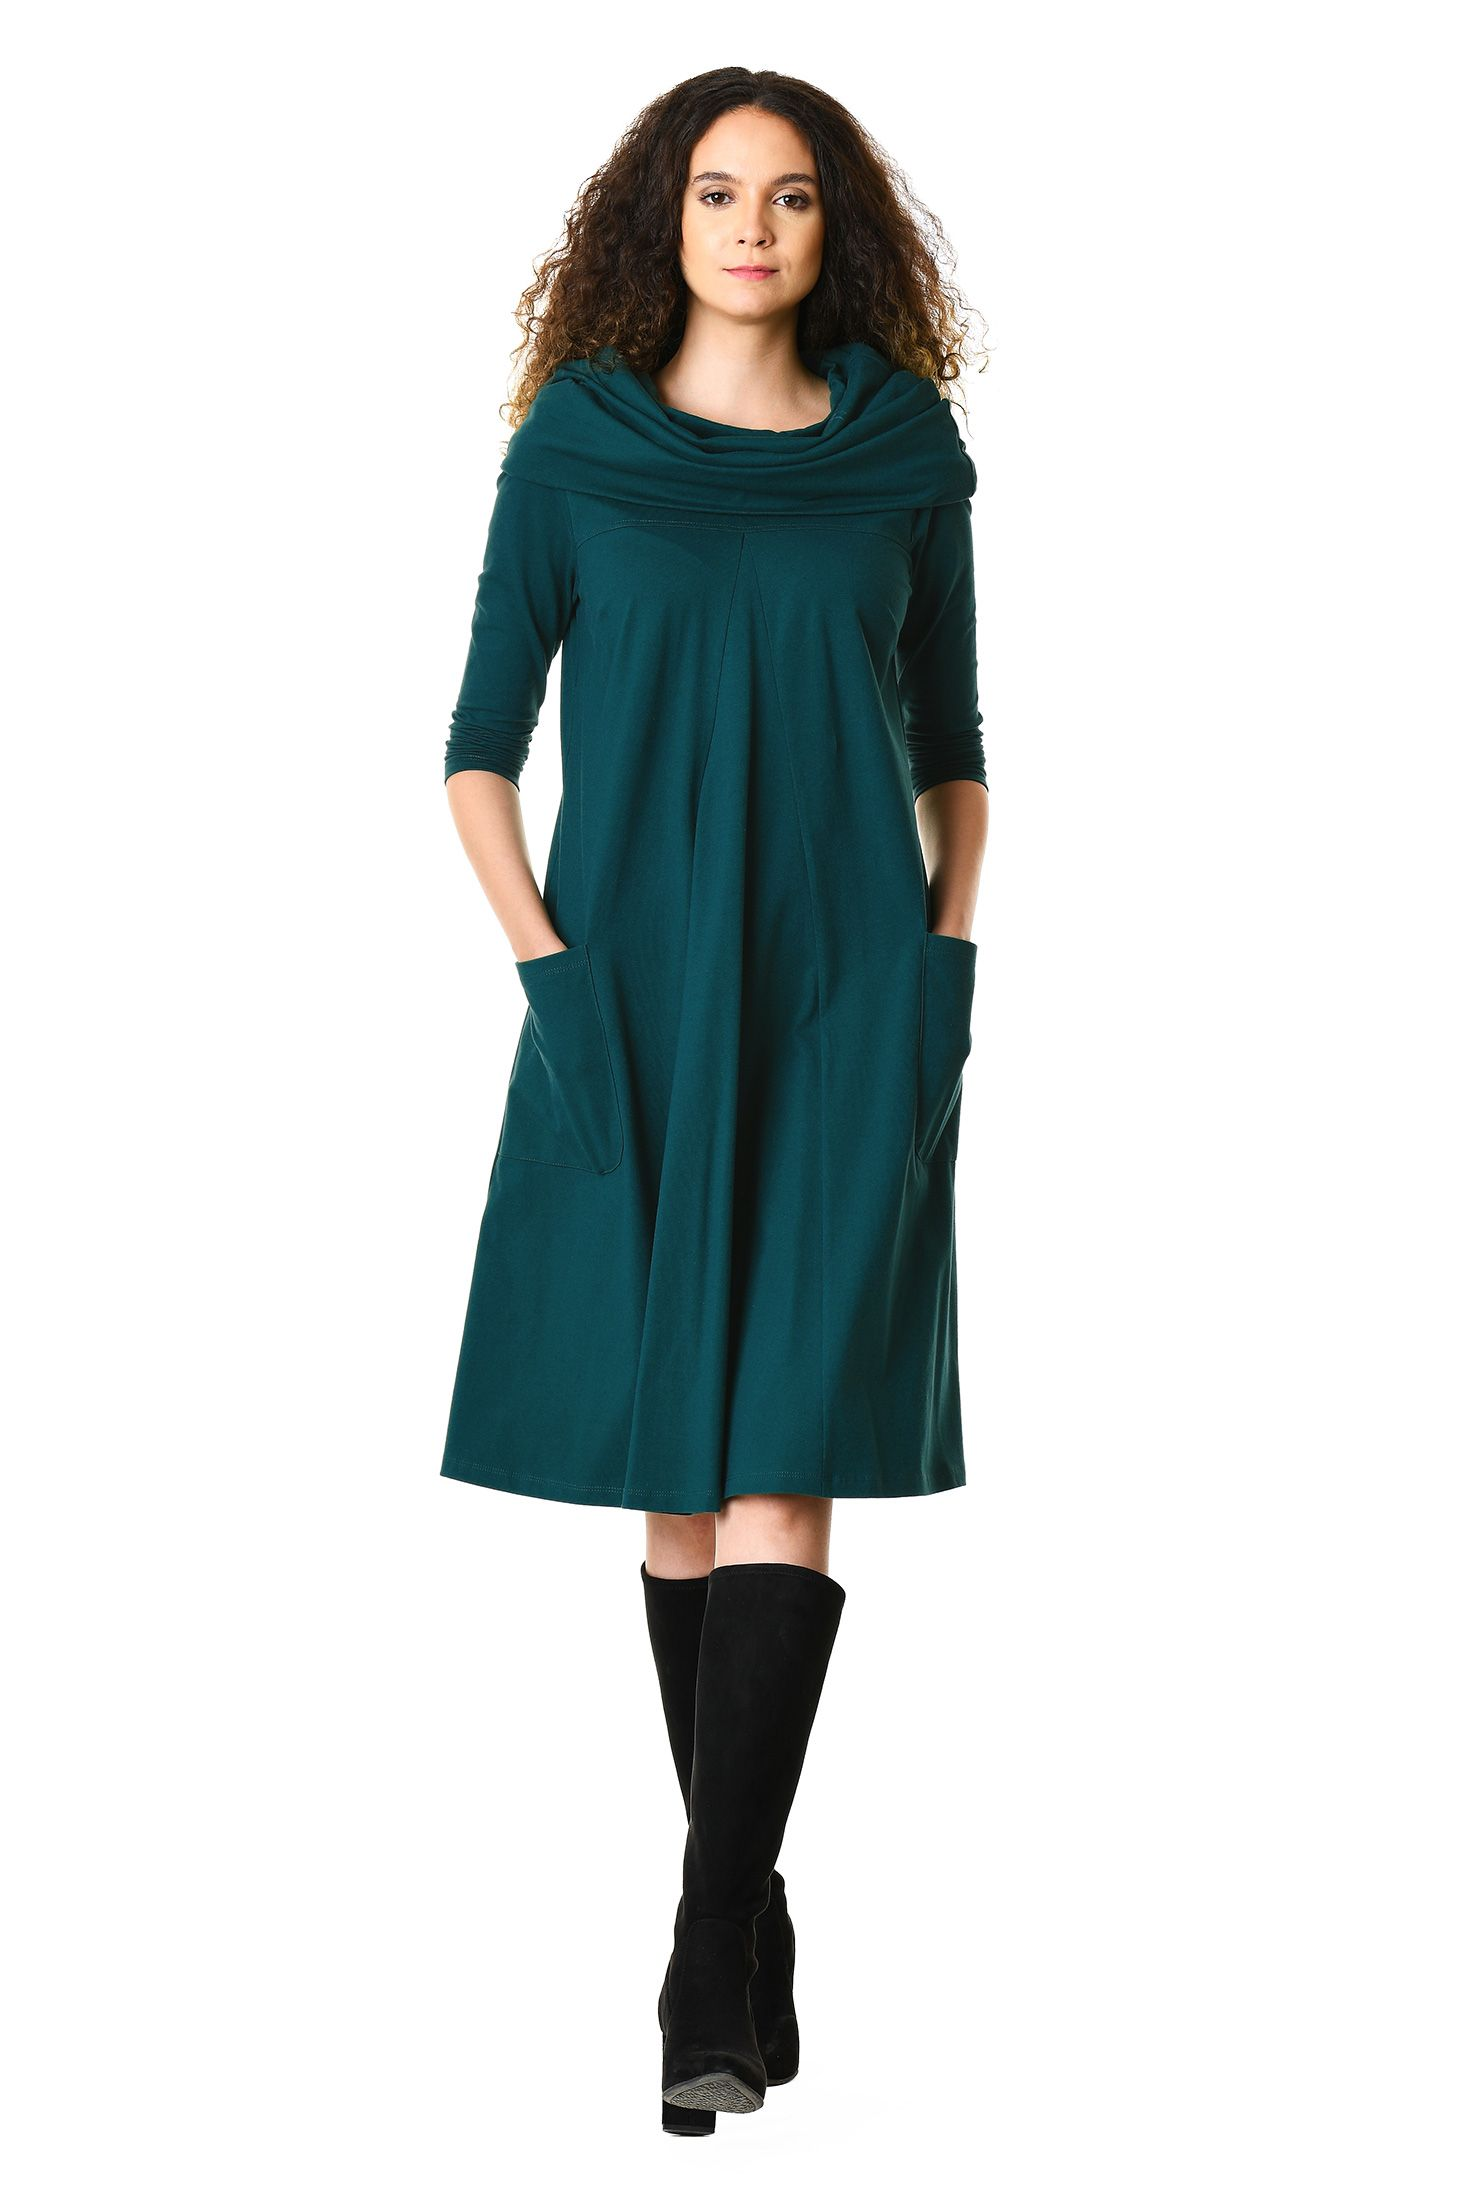 Cowl neck cotton knit dress | Responsible Fashion | Pinterest ...